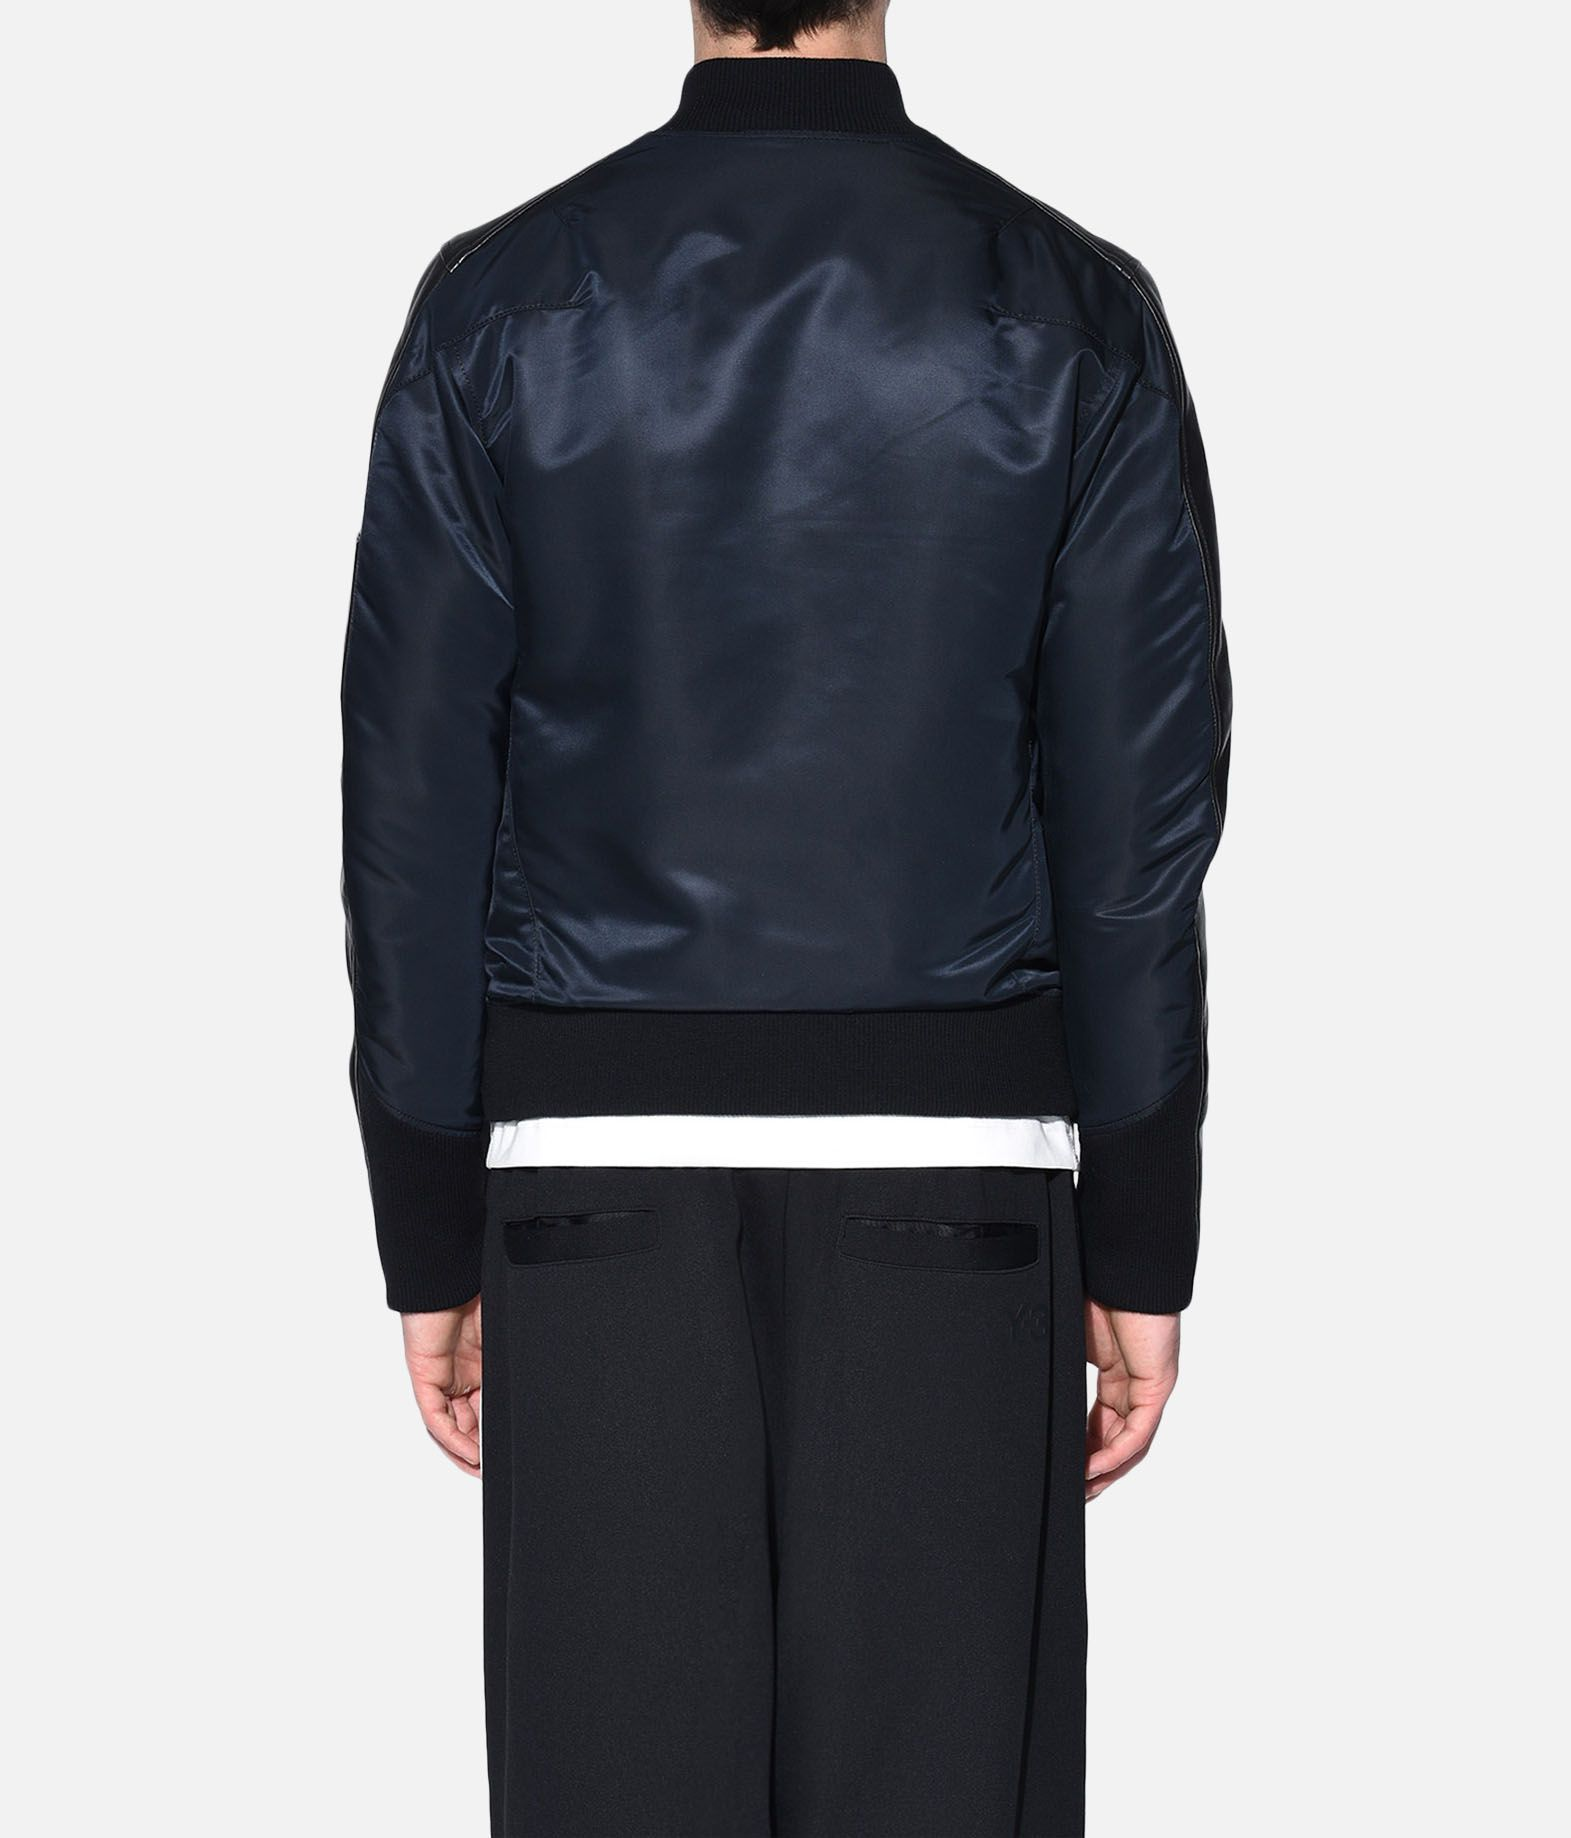 Y-3 Y-3 Bonded Leather Jacket Leather jacket Man d